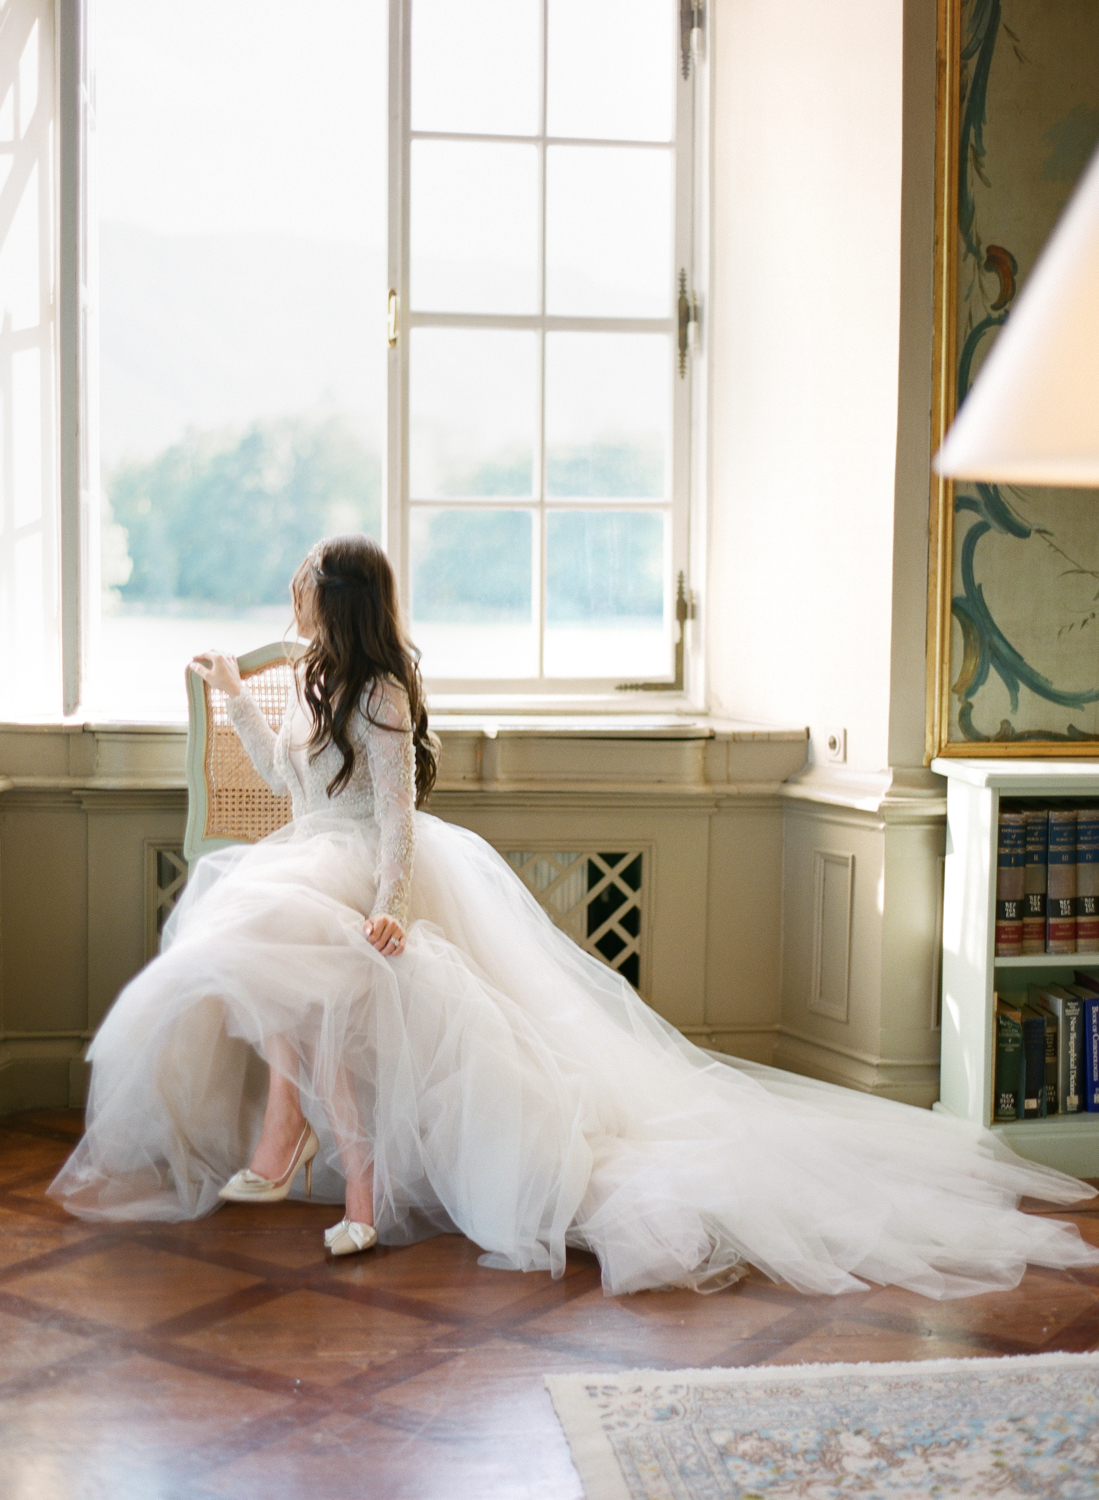 lake_como_wedding_photographer_nikol_bodnarova_239.JPG